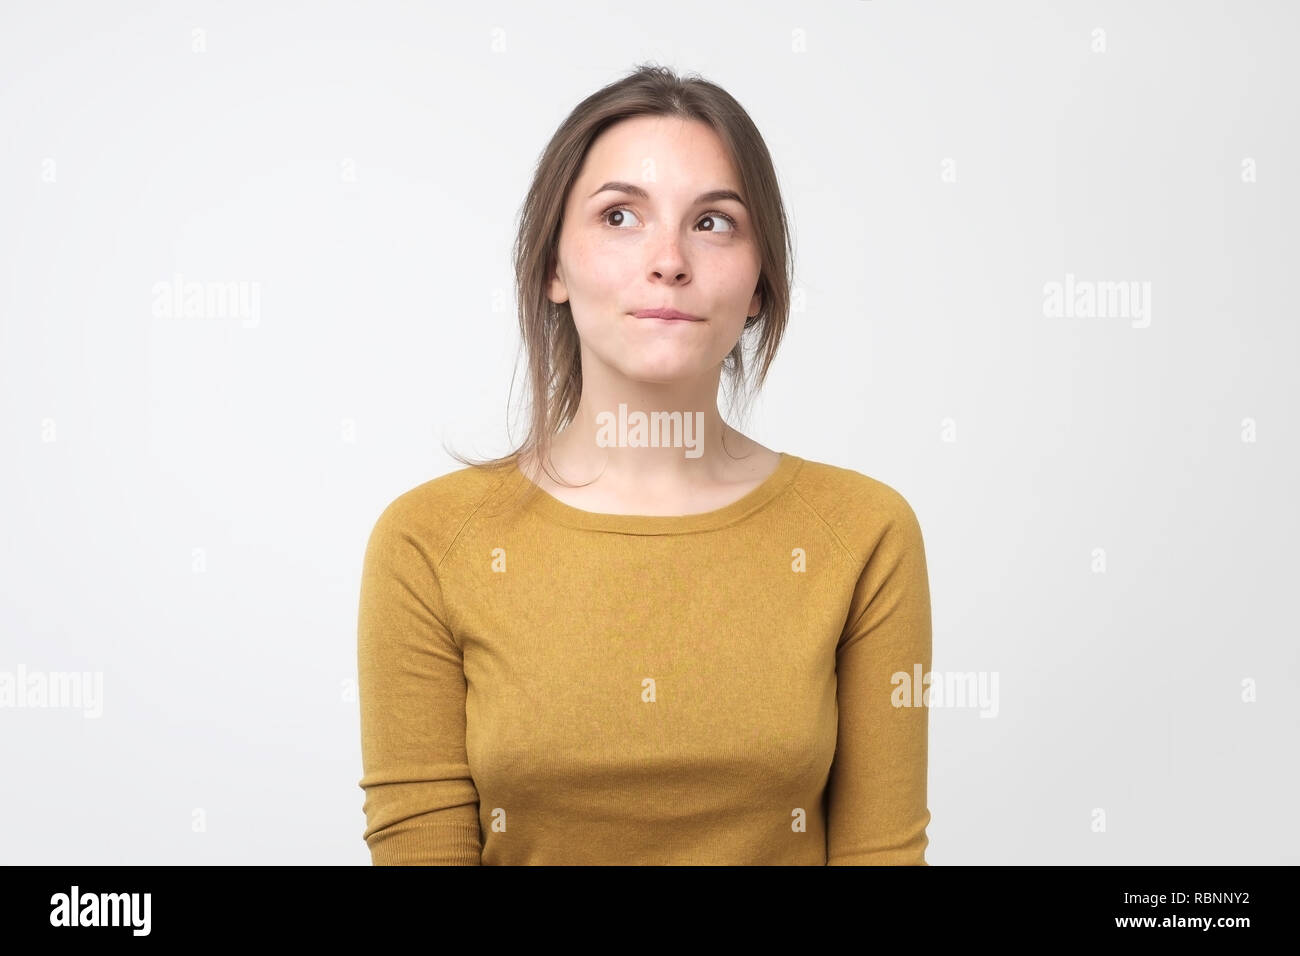 Young tricky woman having something in mind with sly facial expressions, over gray background - Stock Image